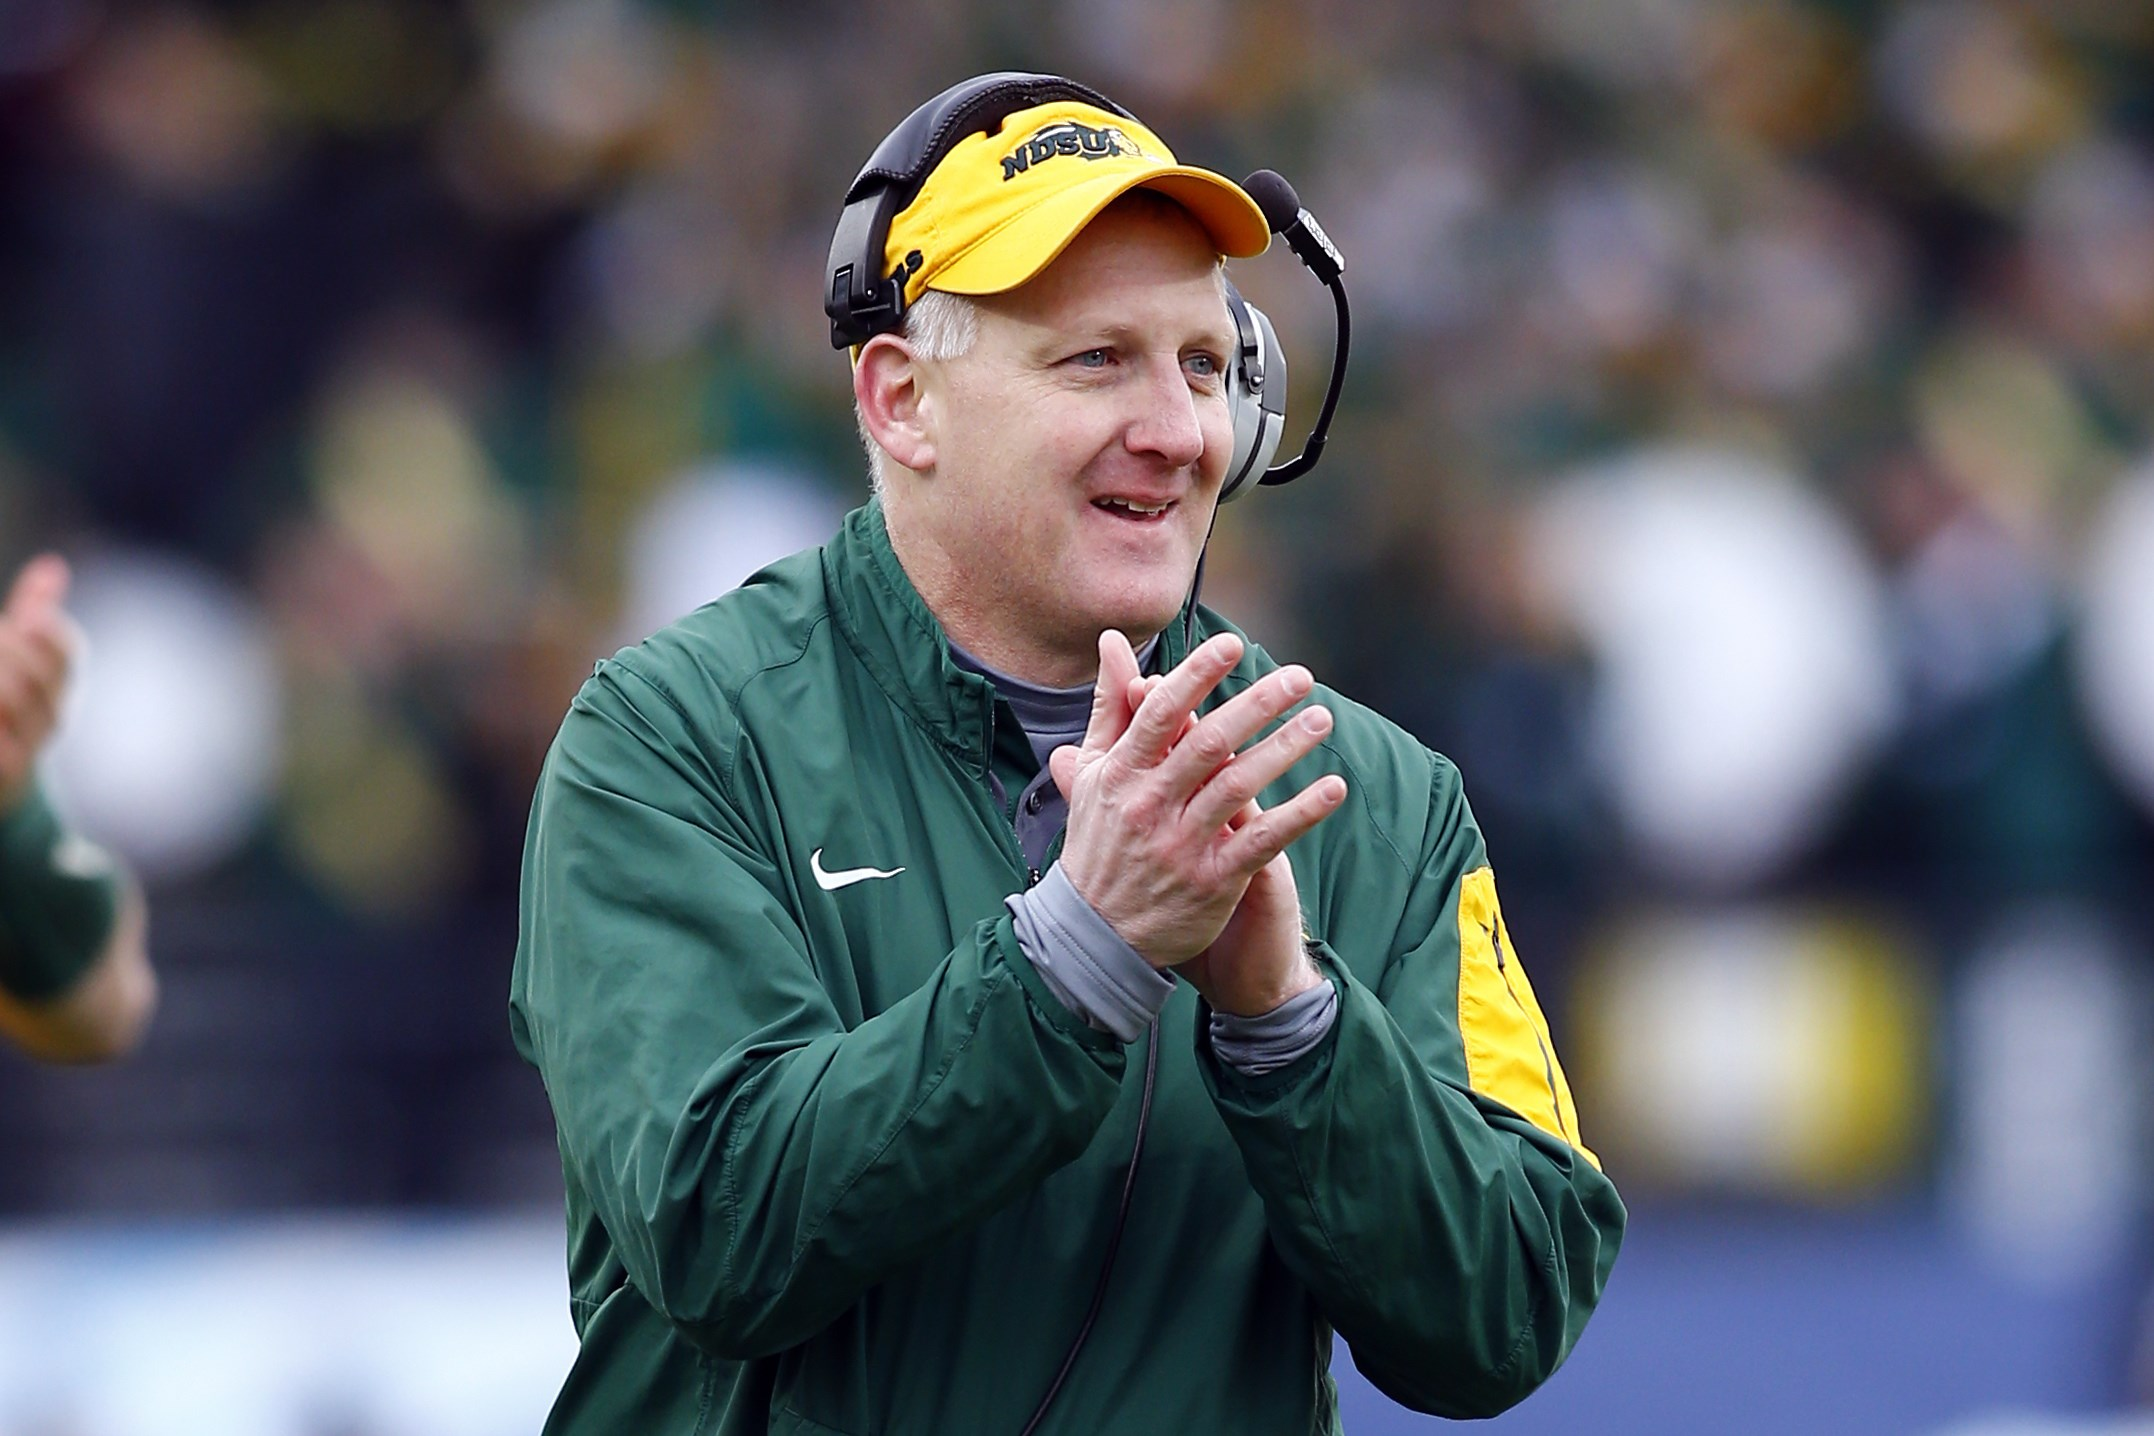 North Dakota State head coach Chris Klieman during the FCS championship NCAA college football game between North Dakota State and Jacksonville State, Saturday, Jan. 9, 2016, in Frisco, Texas.  North Dakota State beat Jacksonville State 37-10 to win their